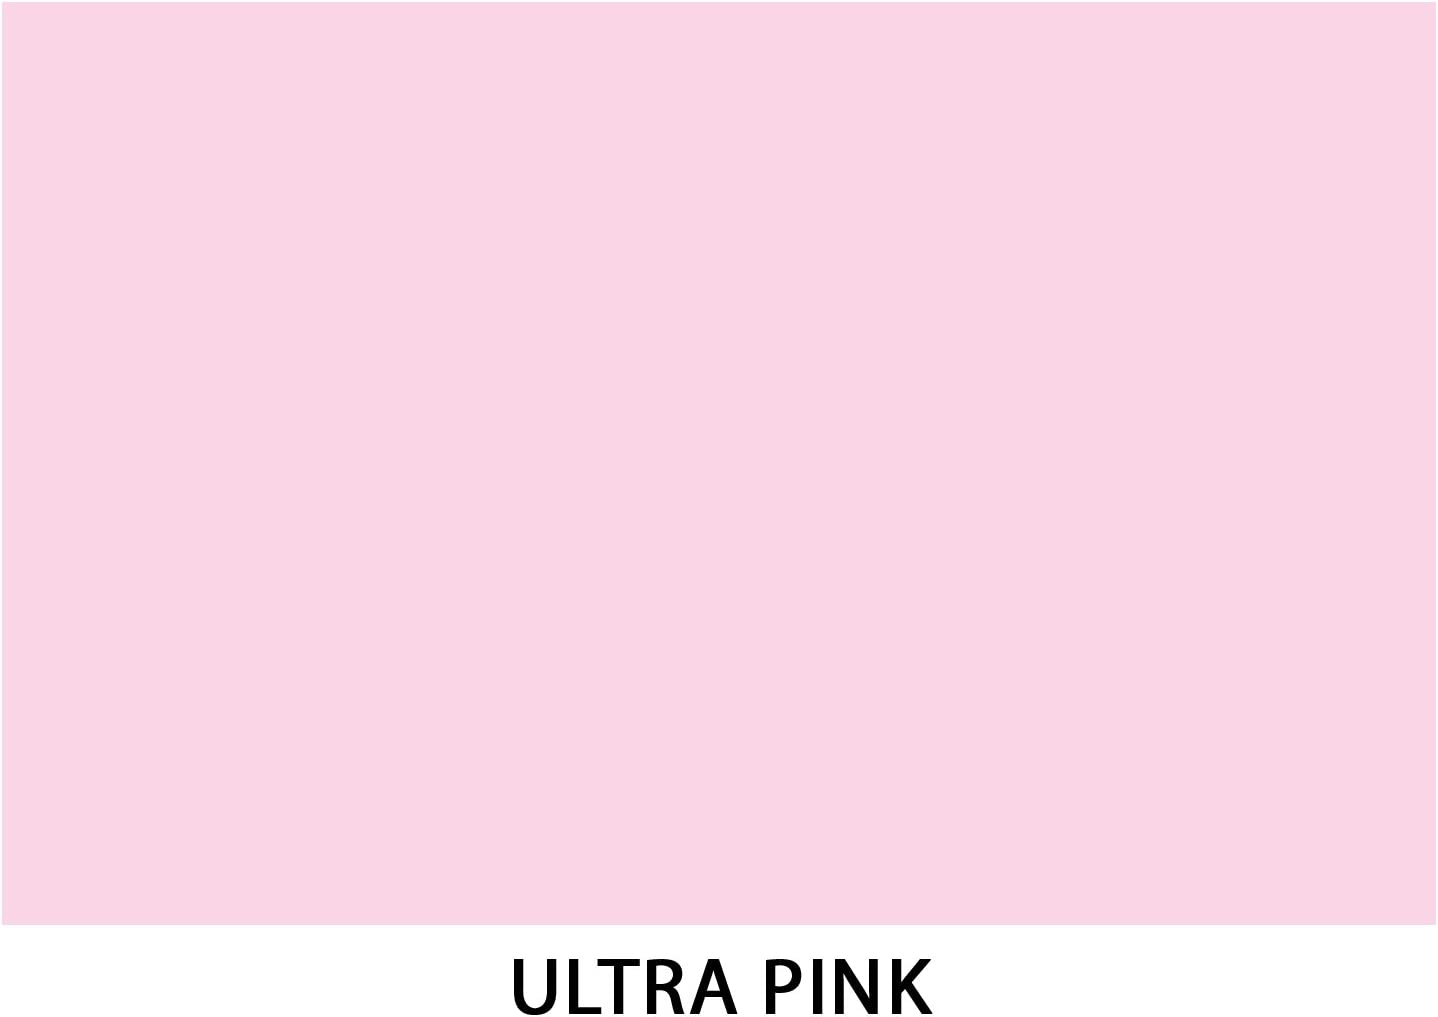 50 Sheets Per Pack 11 x17 |Ultra Pink Acid /& Lignin Free Superior Thick 65-lb Cardstock Premium Colored Card Stock Paper Perfect for School Supplies Arts and Crafts